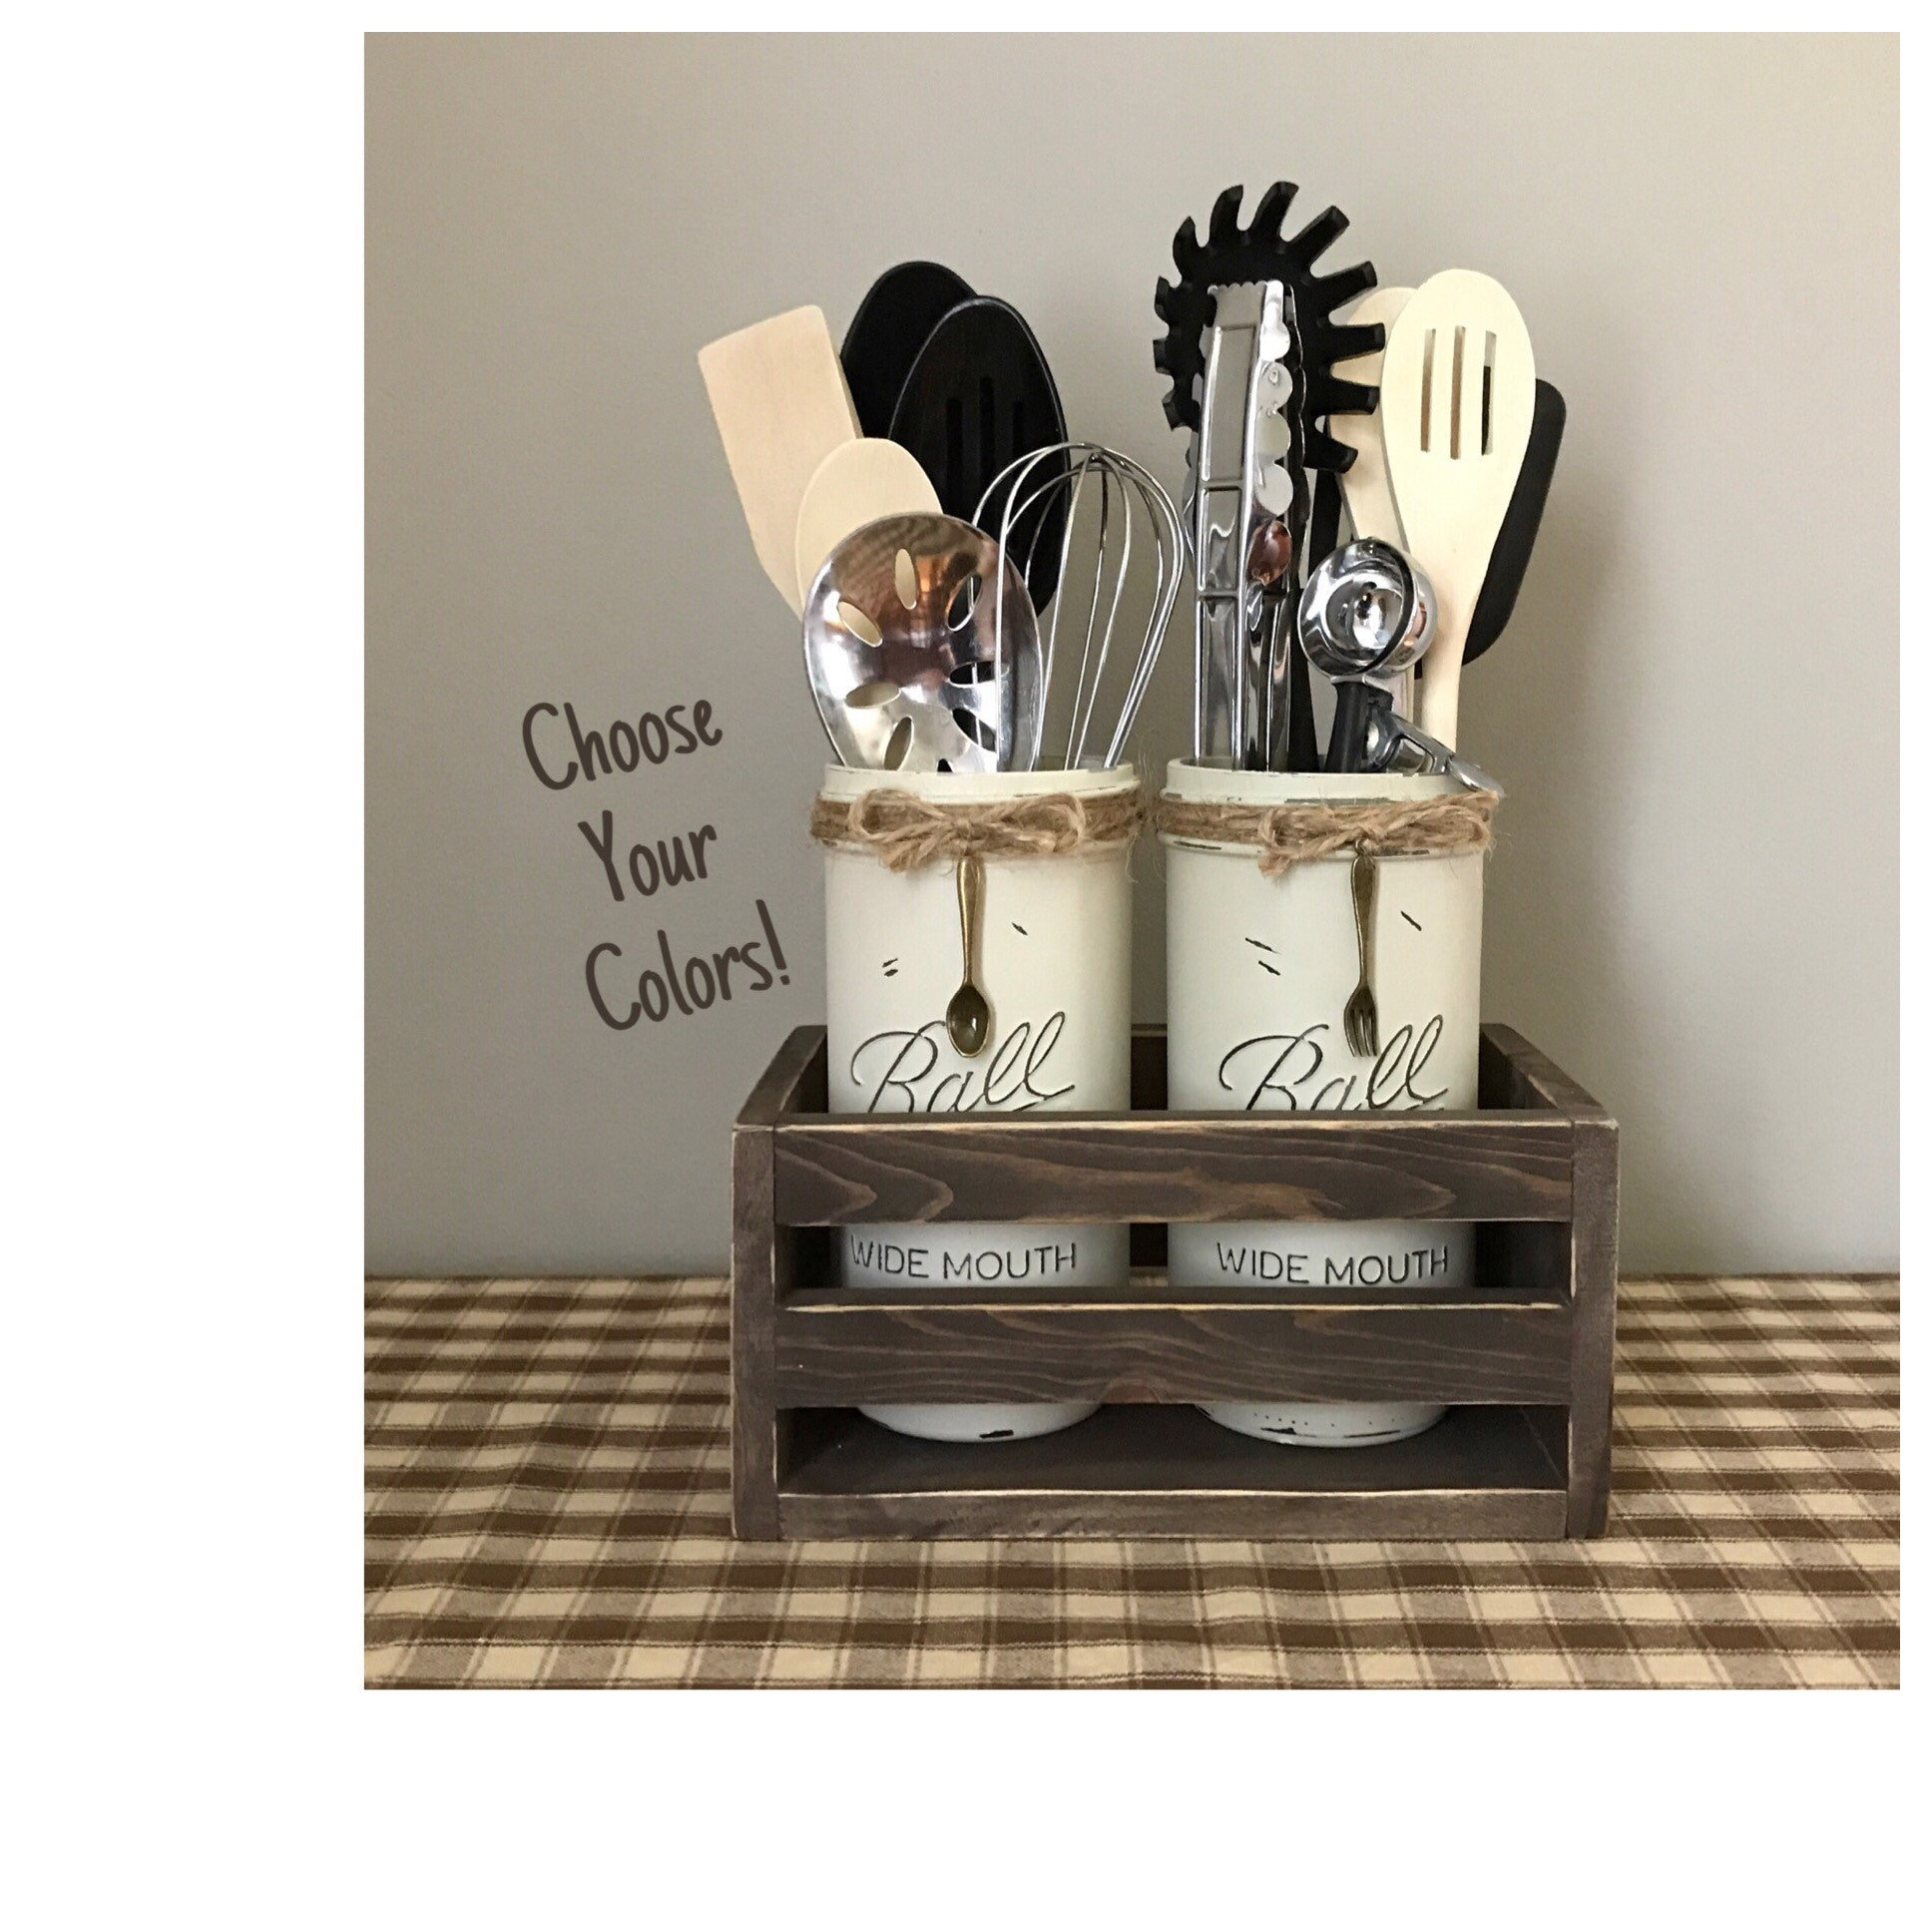 Utensil Holder Kitchen Decor Kitchen Utensil Holder Mason